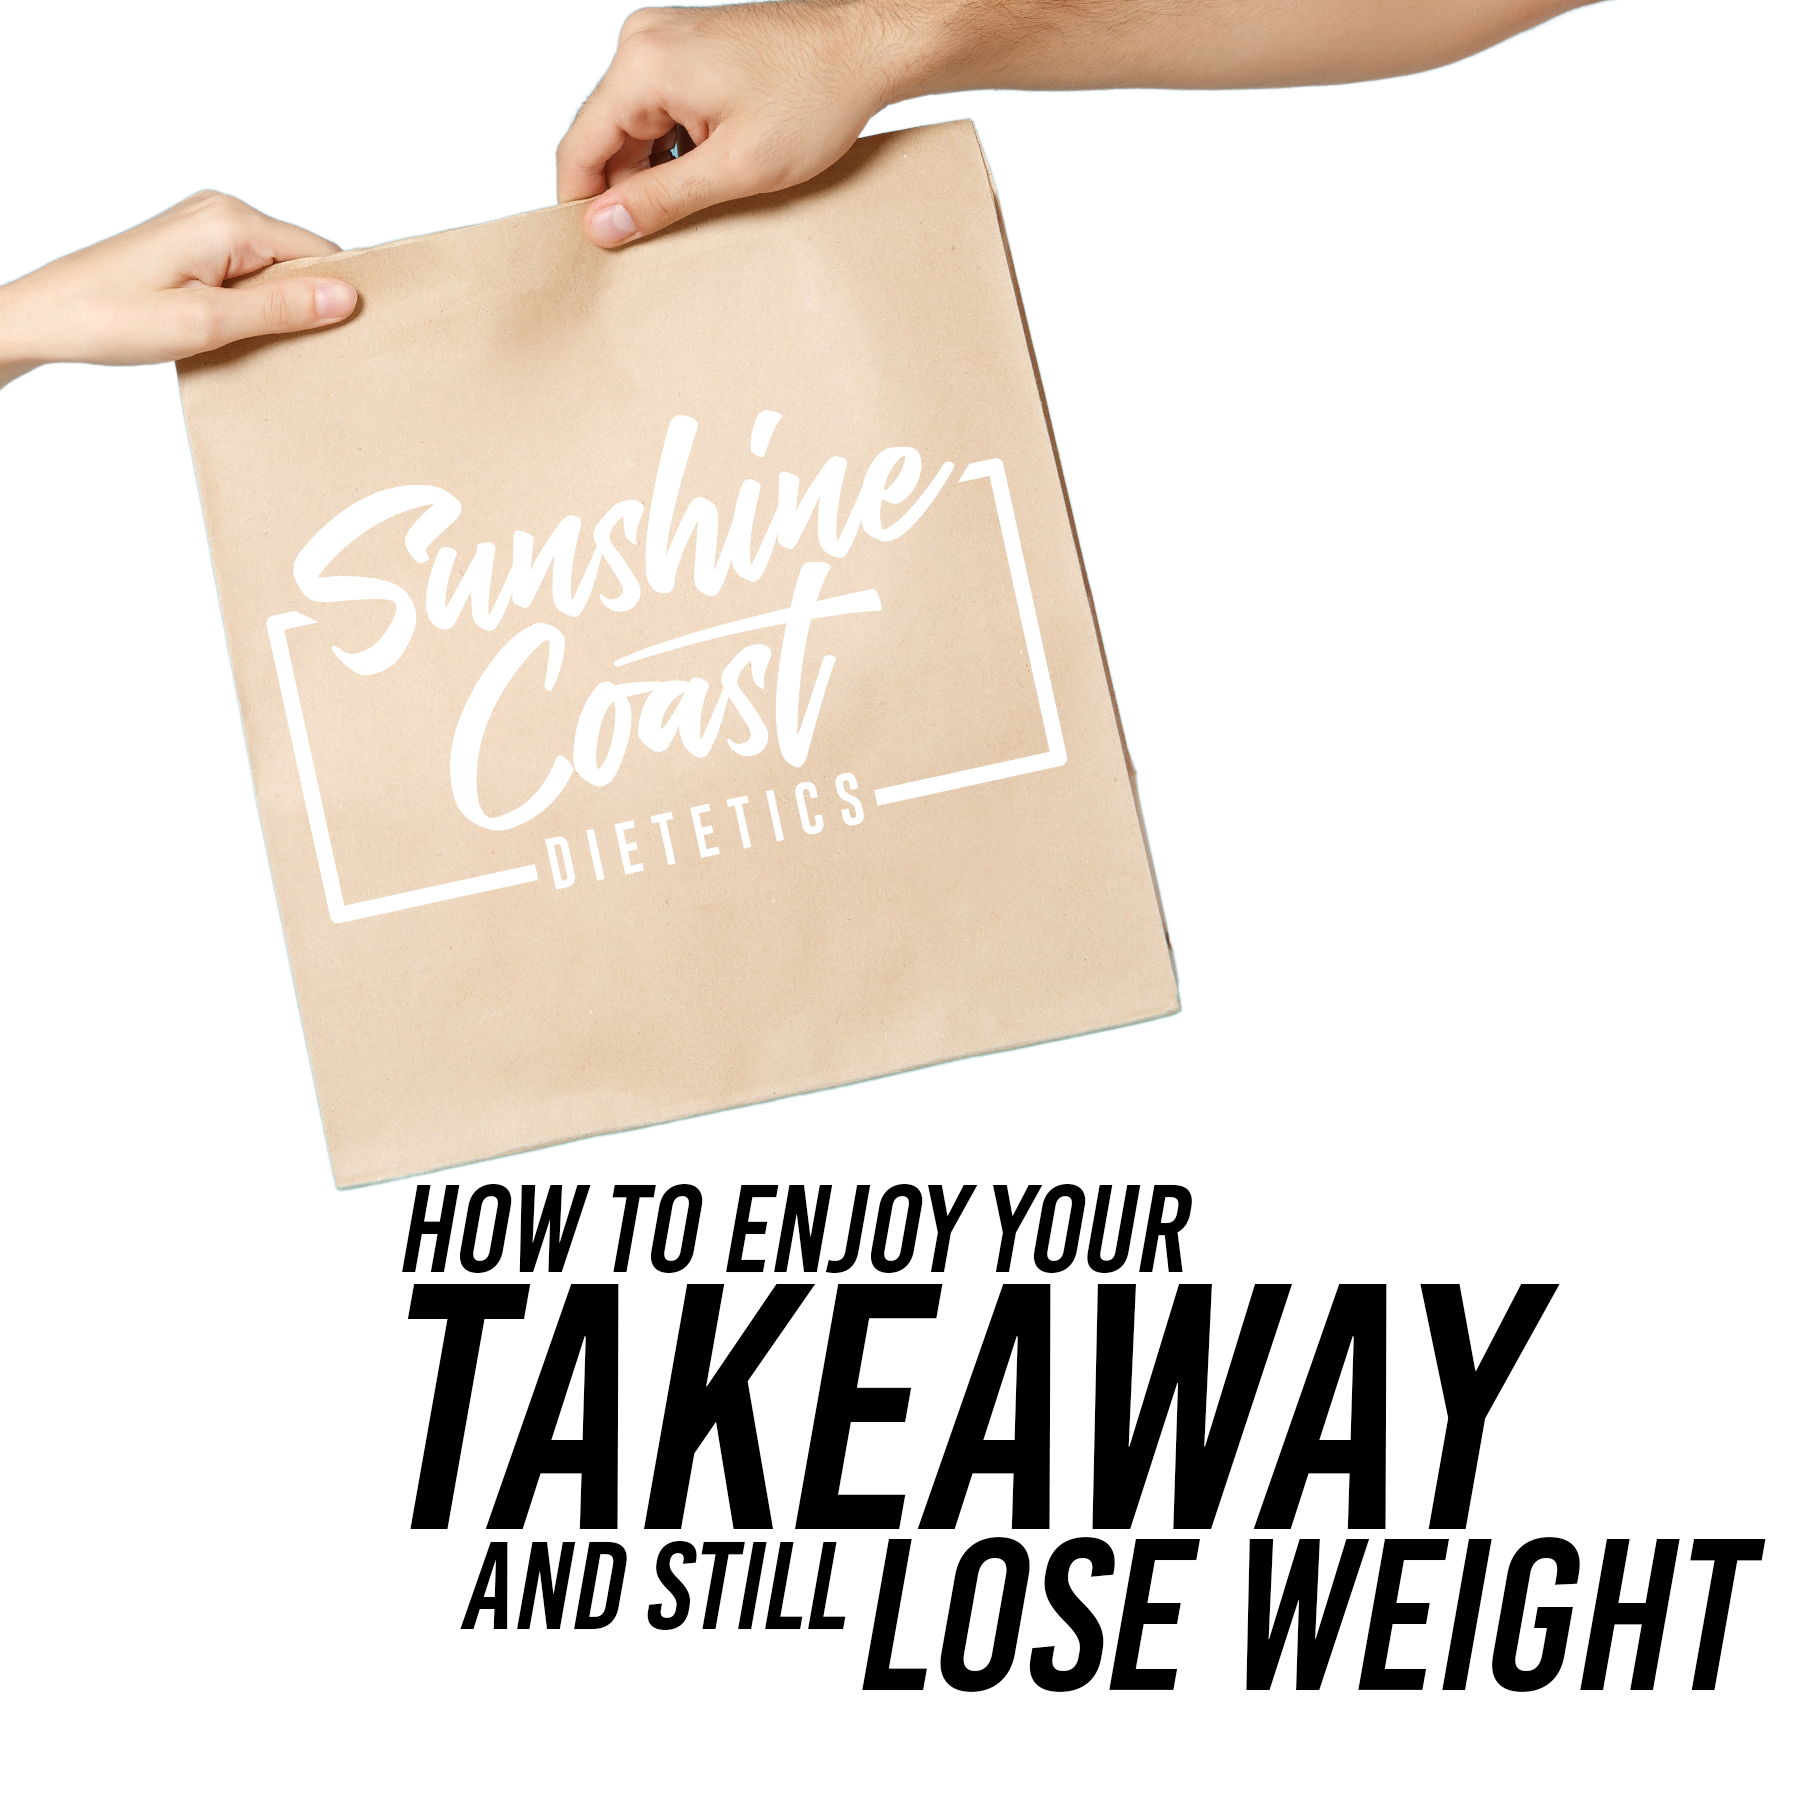 How To Enjoy Your Takeaway and Still Lose Weight